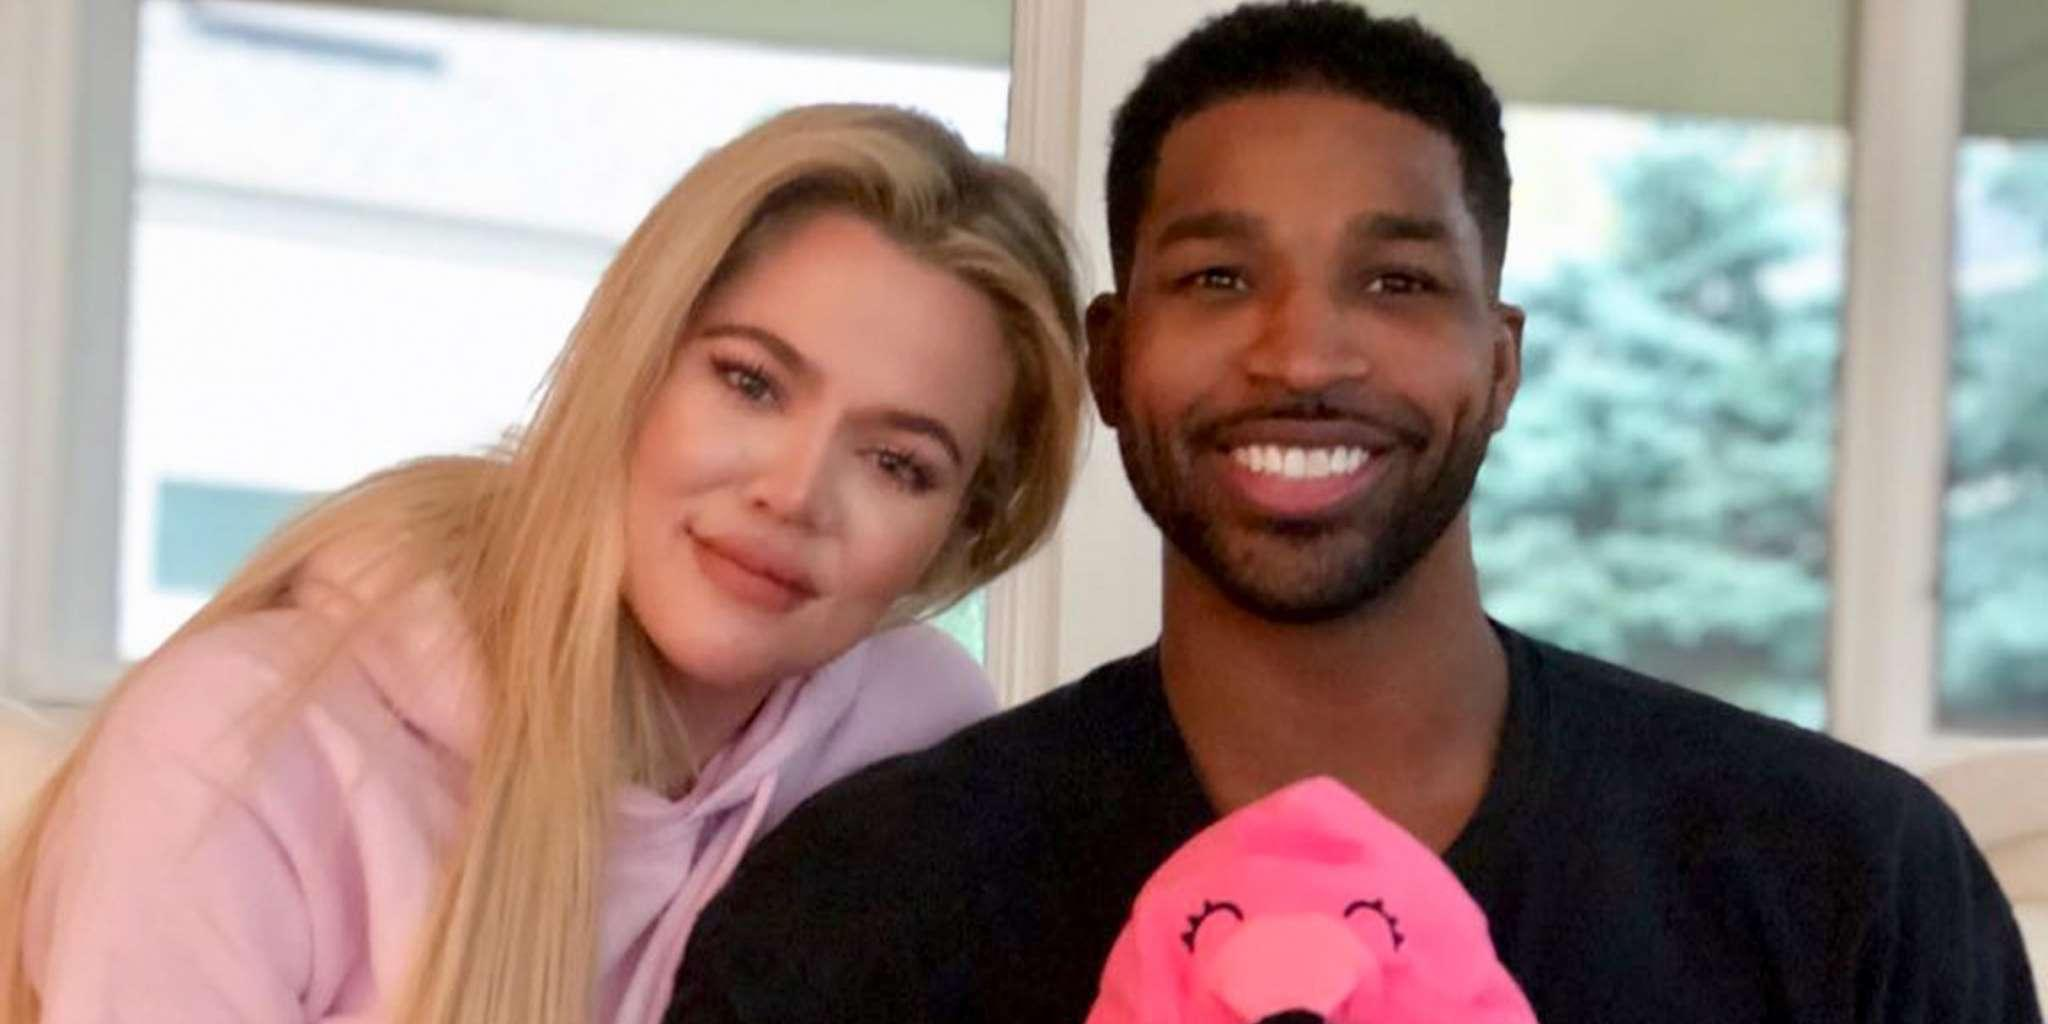 Khloe Kardashian And Tristan Thompson Share A Kiss In 2019 After Khloe Detailed What 2018 Meant To Her